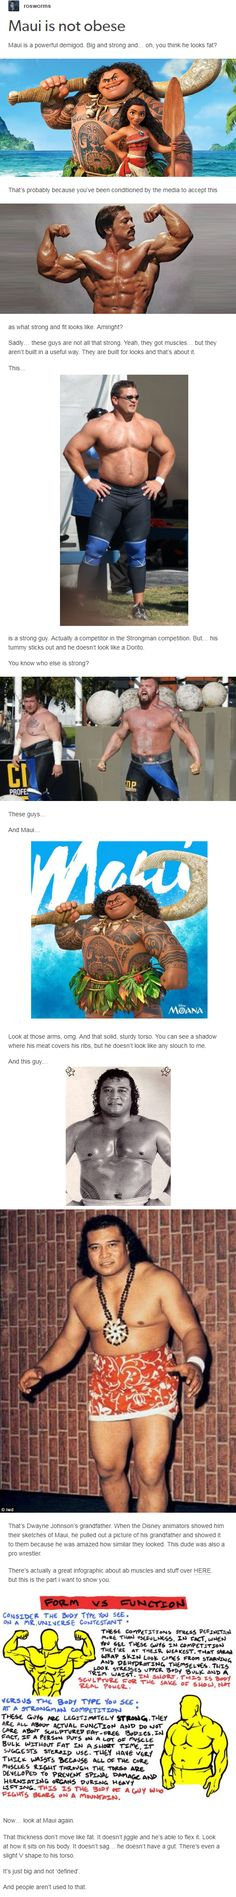 Maui is not obese Maui is a powerful demigod. Big and strong and… oh, you think he looks fat?